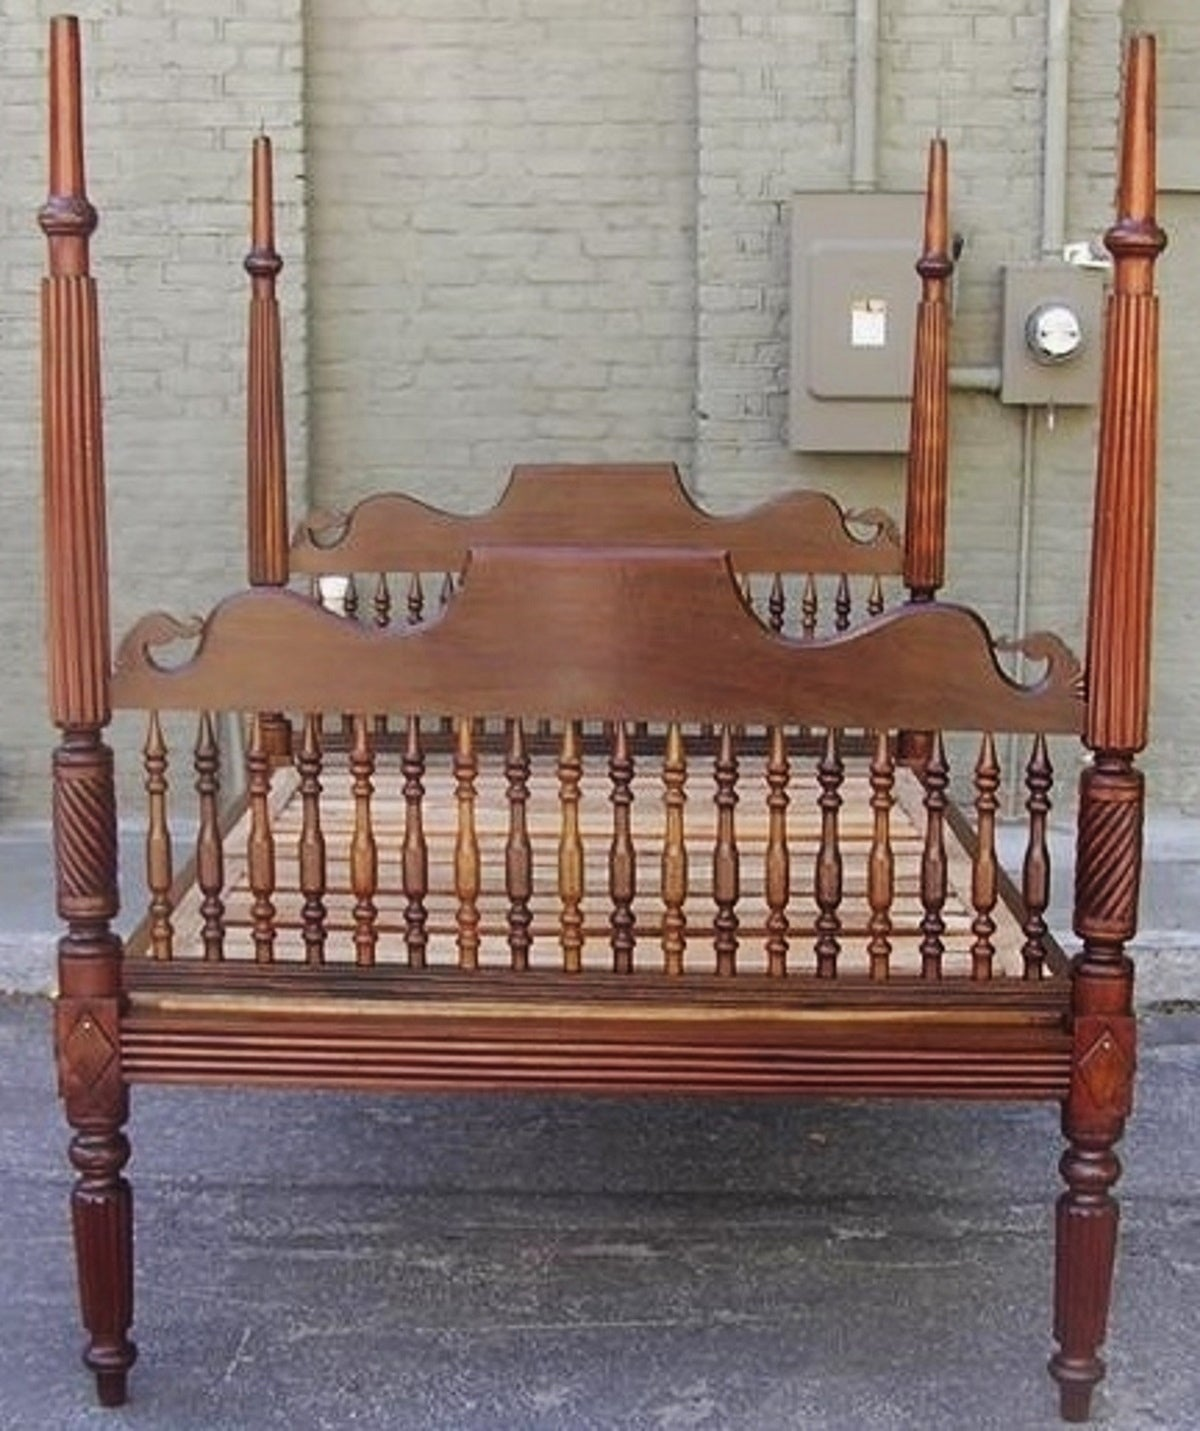 Four Poster Bed Caribbean Mahogany Reeded And Barley Twist Four Poster Bed Circa